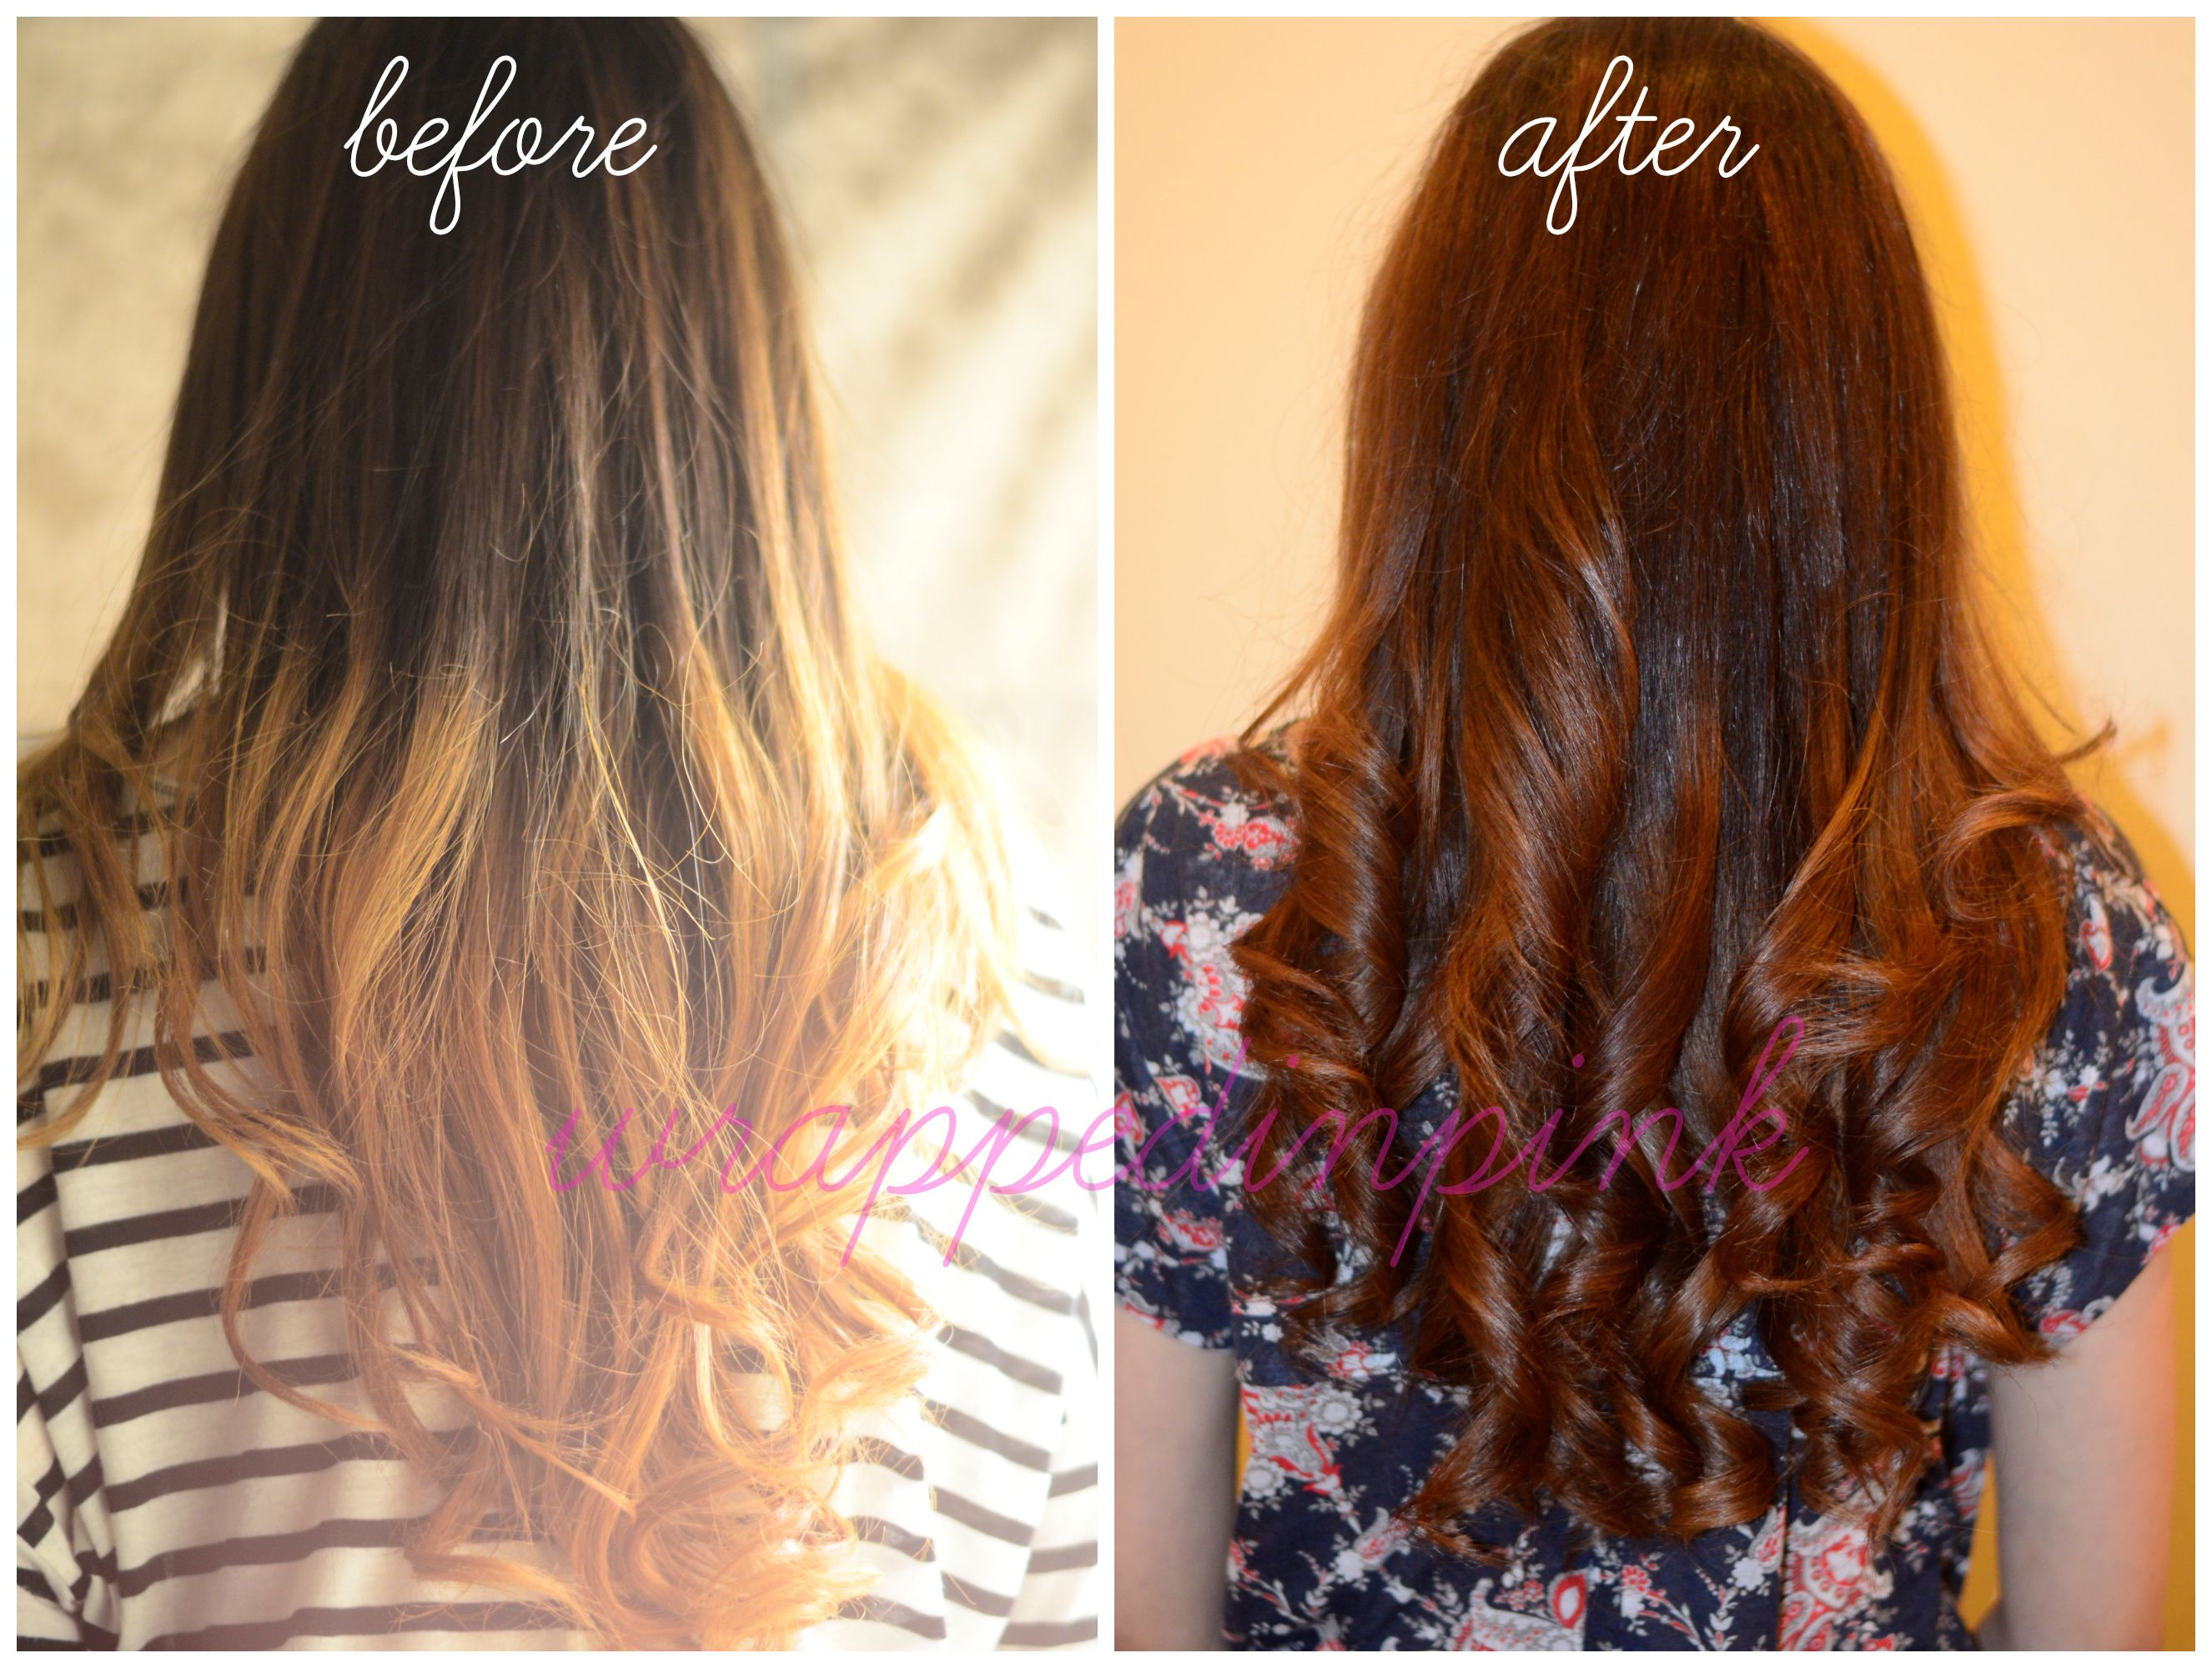 before after hair gloss - Google Search